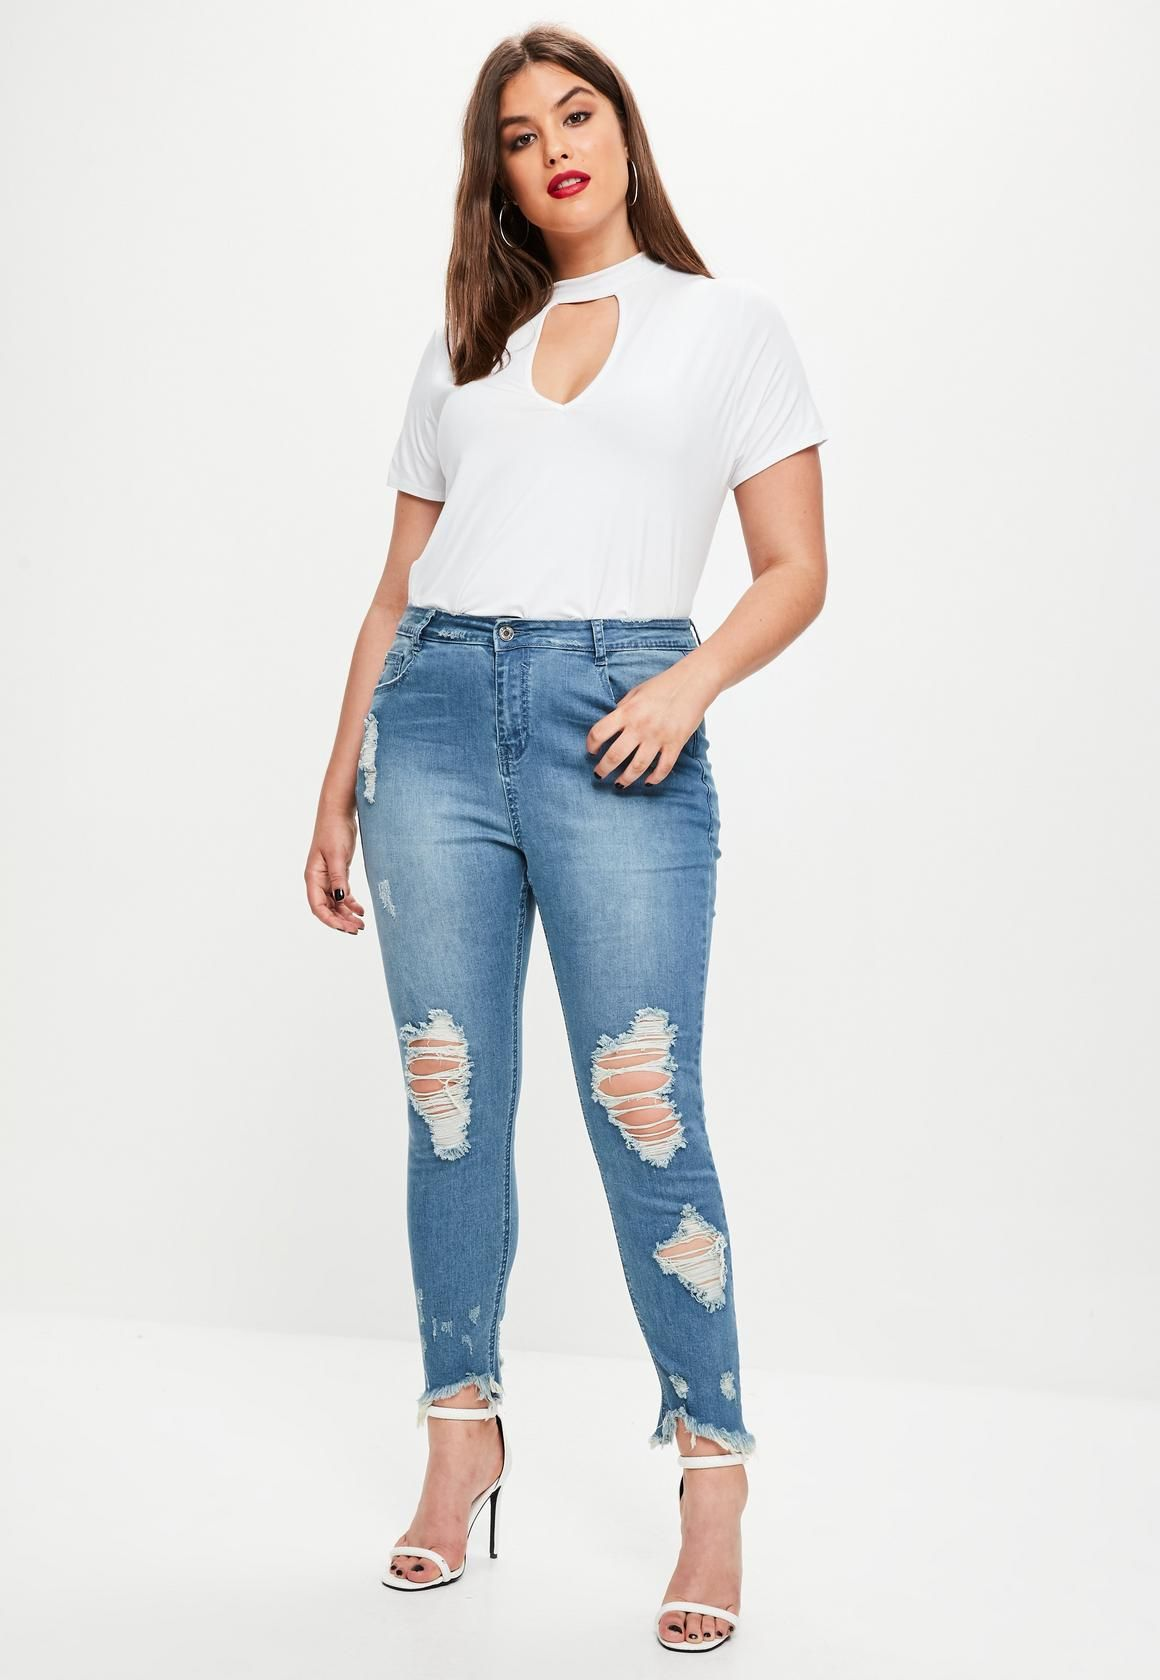 187cbf244bd Missguided - Plus Size Blue Ripped Jeans